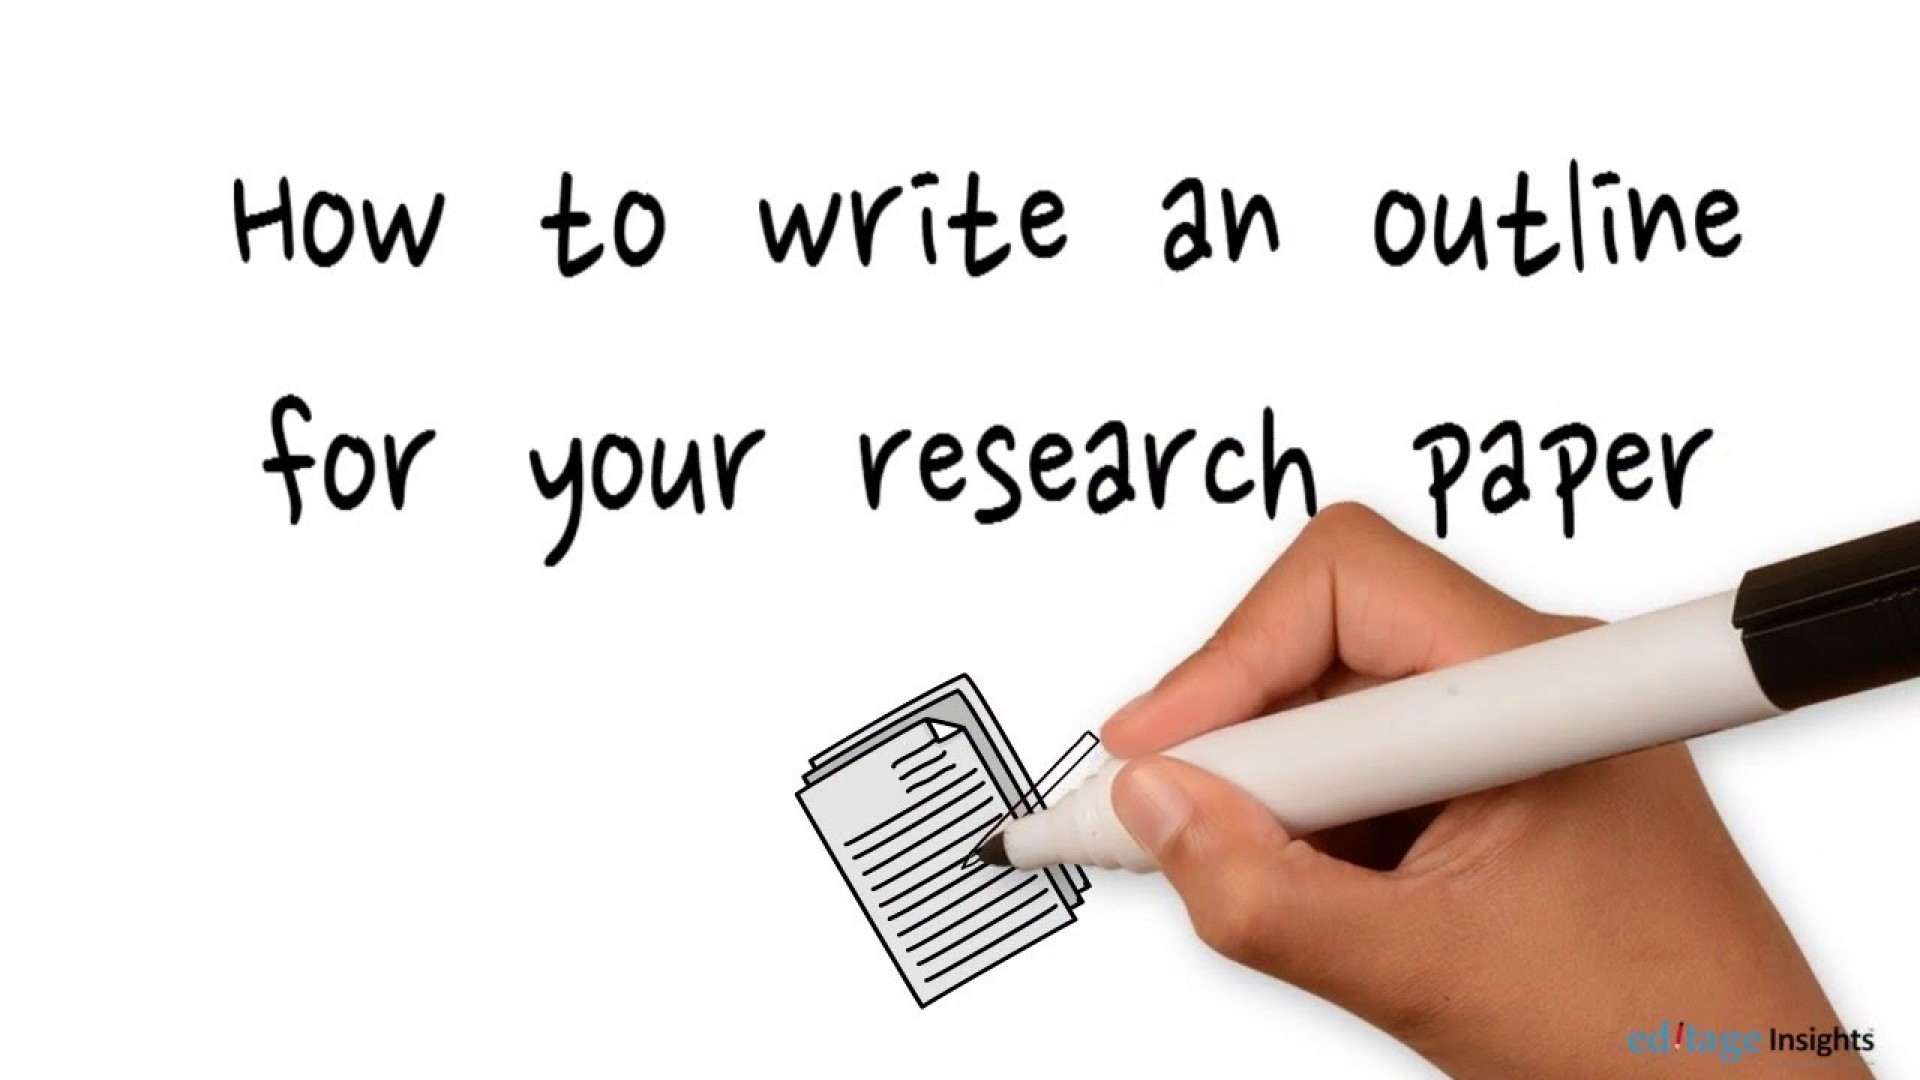 005 How To Structure Research Paper Outline Surprising A Write Apa Owl Purdue Pdf 1920